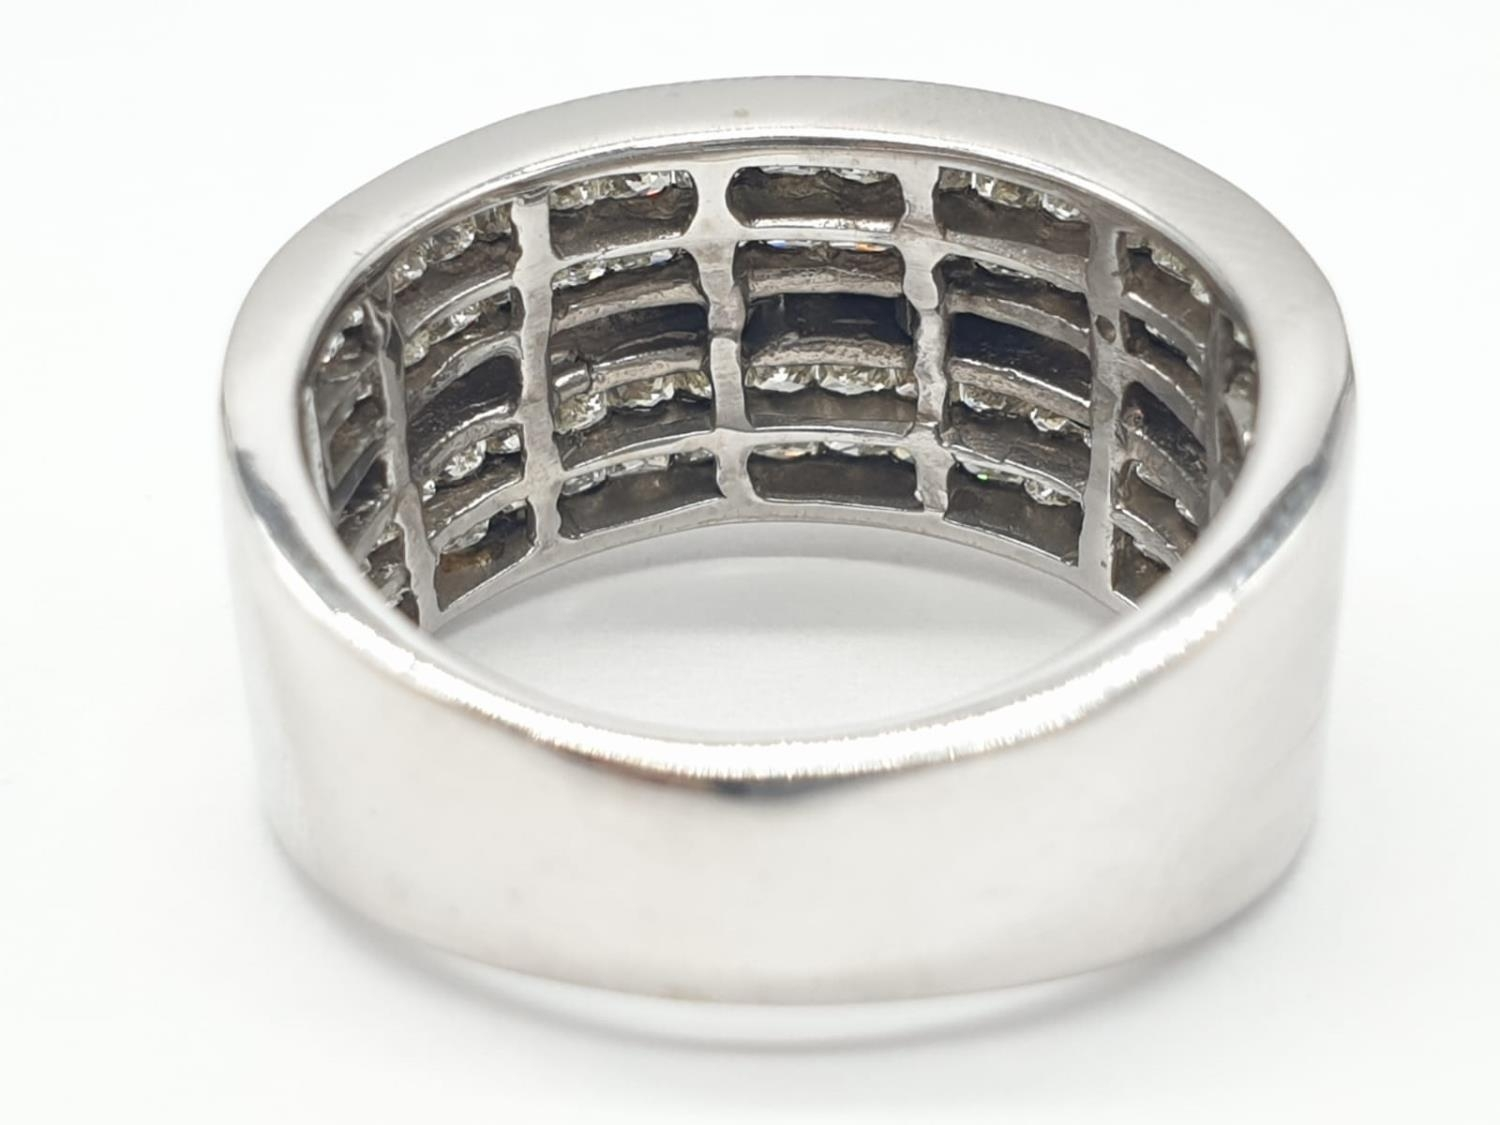 14ct white gold ring with 1.87ct diamonds. Size M and weighs 6.8g. - Image 4 of 6